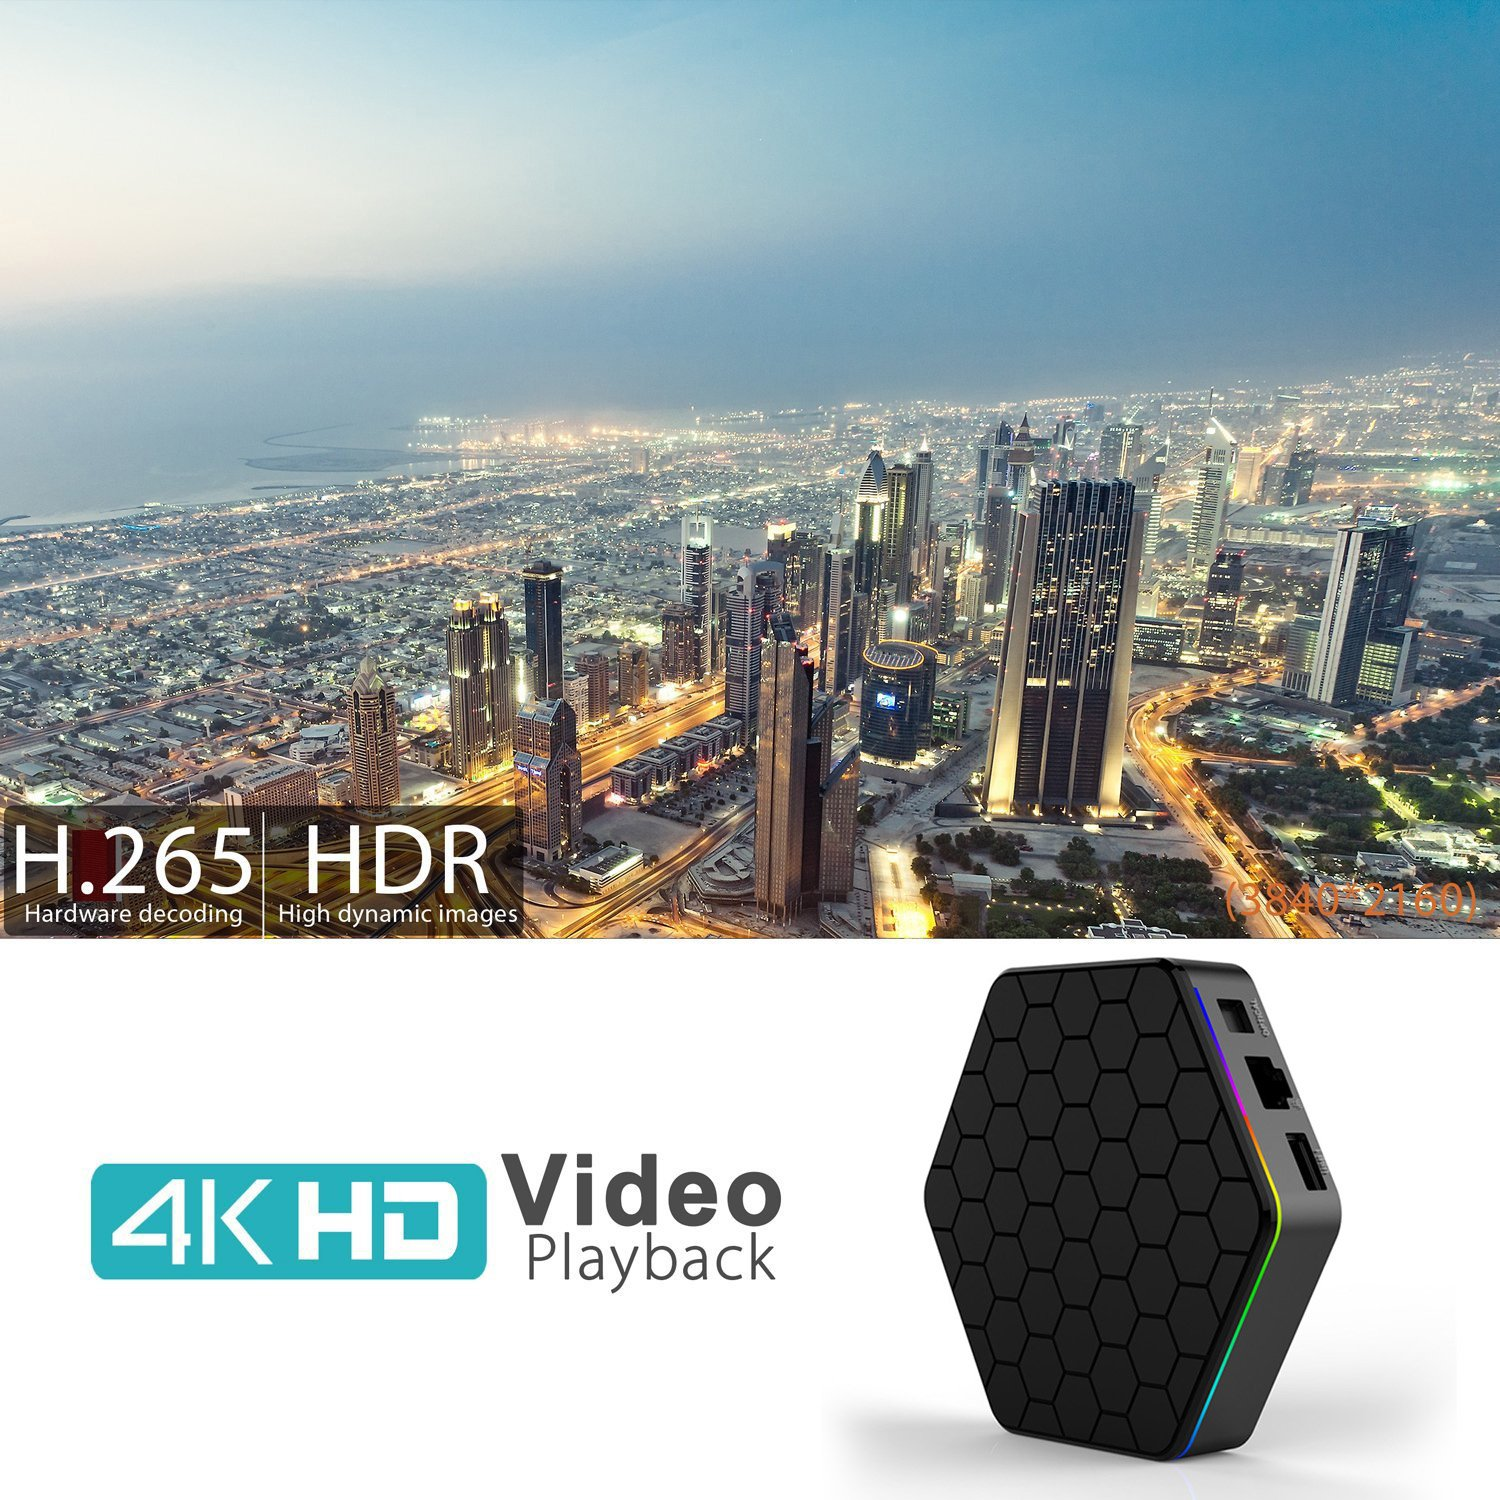 Android 7 1 TV Box,T95Z Plus Android Box 2GB+16GB Dual WiFi 2 4GHz/5GHz  1000M LAN Amlogic S912 Octa-Core Supporting 4K (60Hz) Full HD